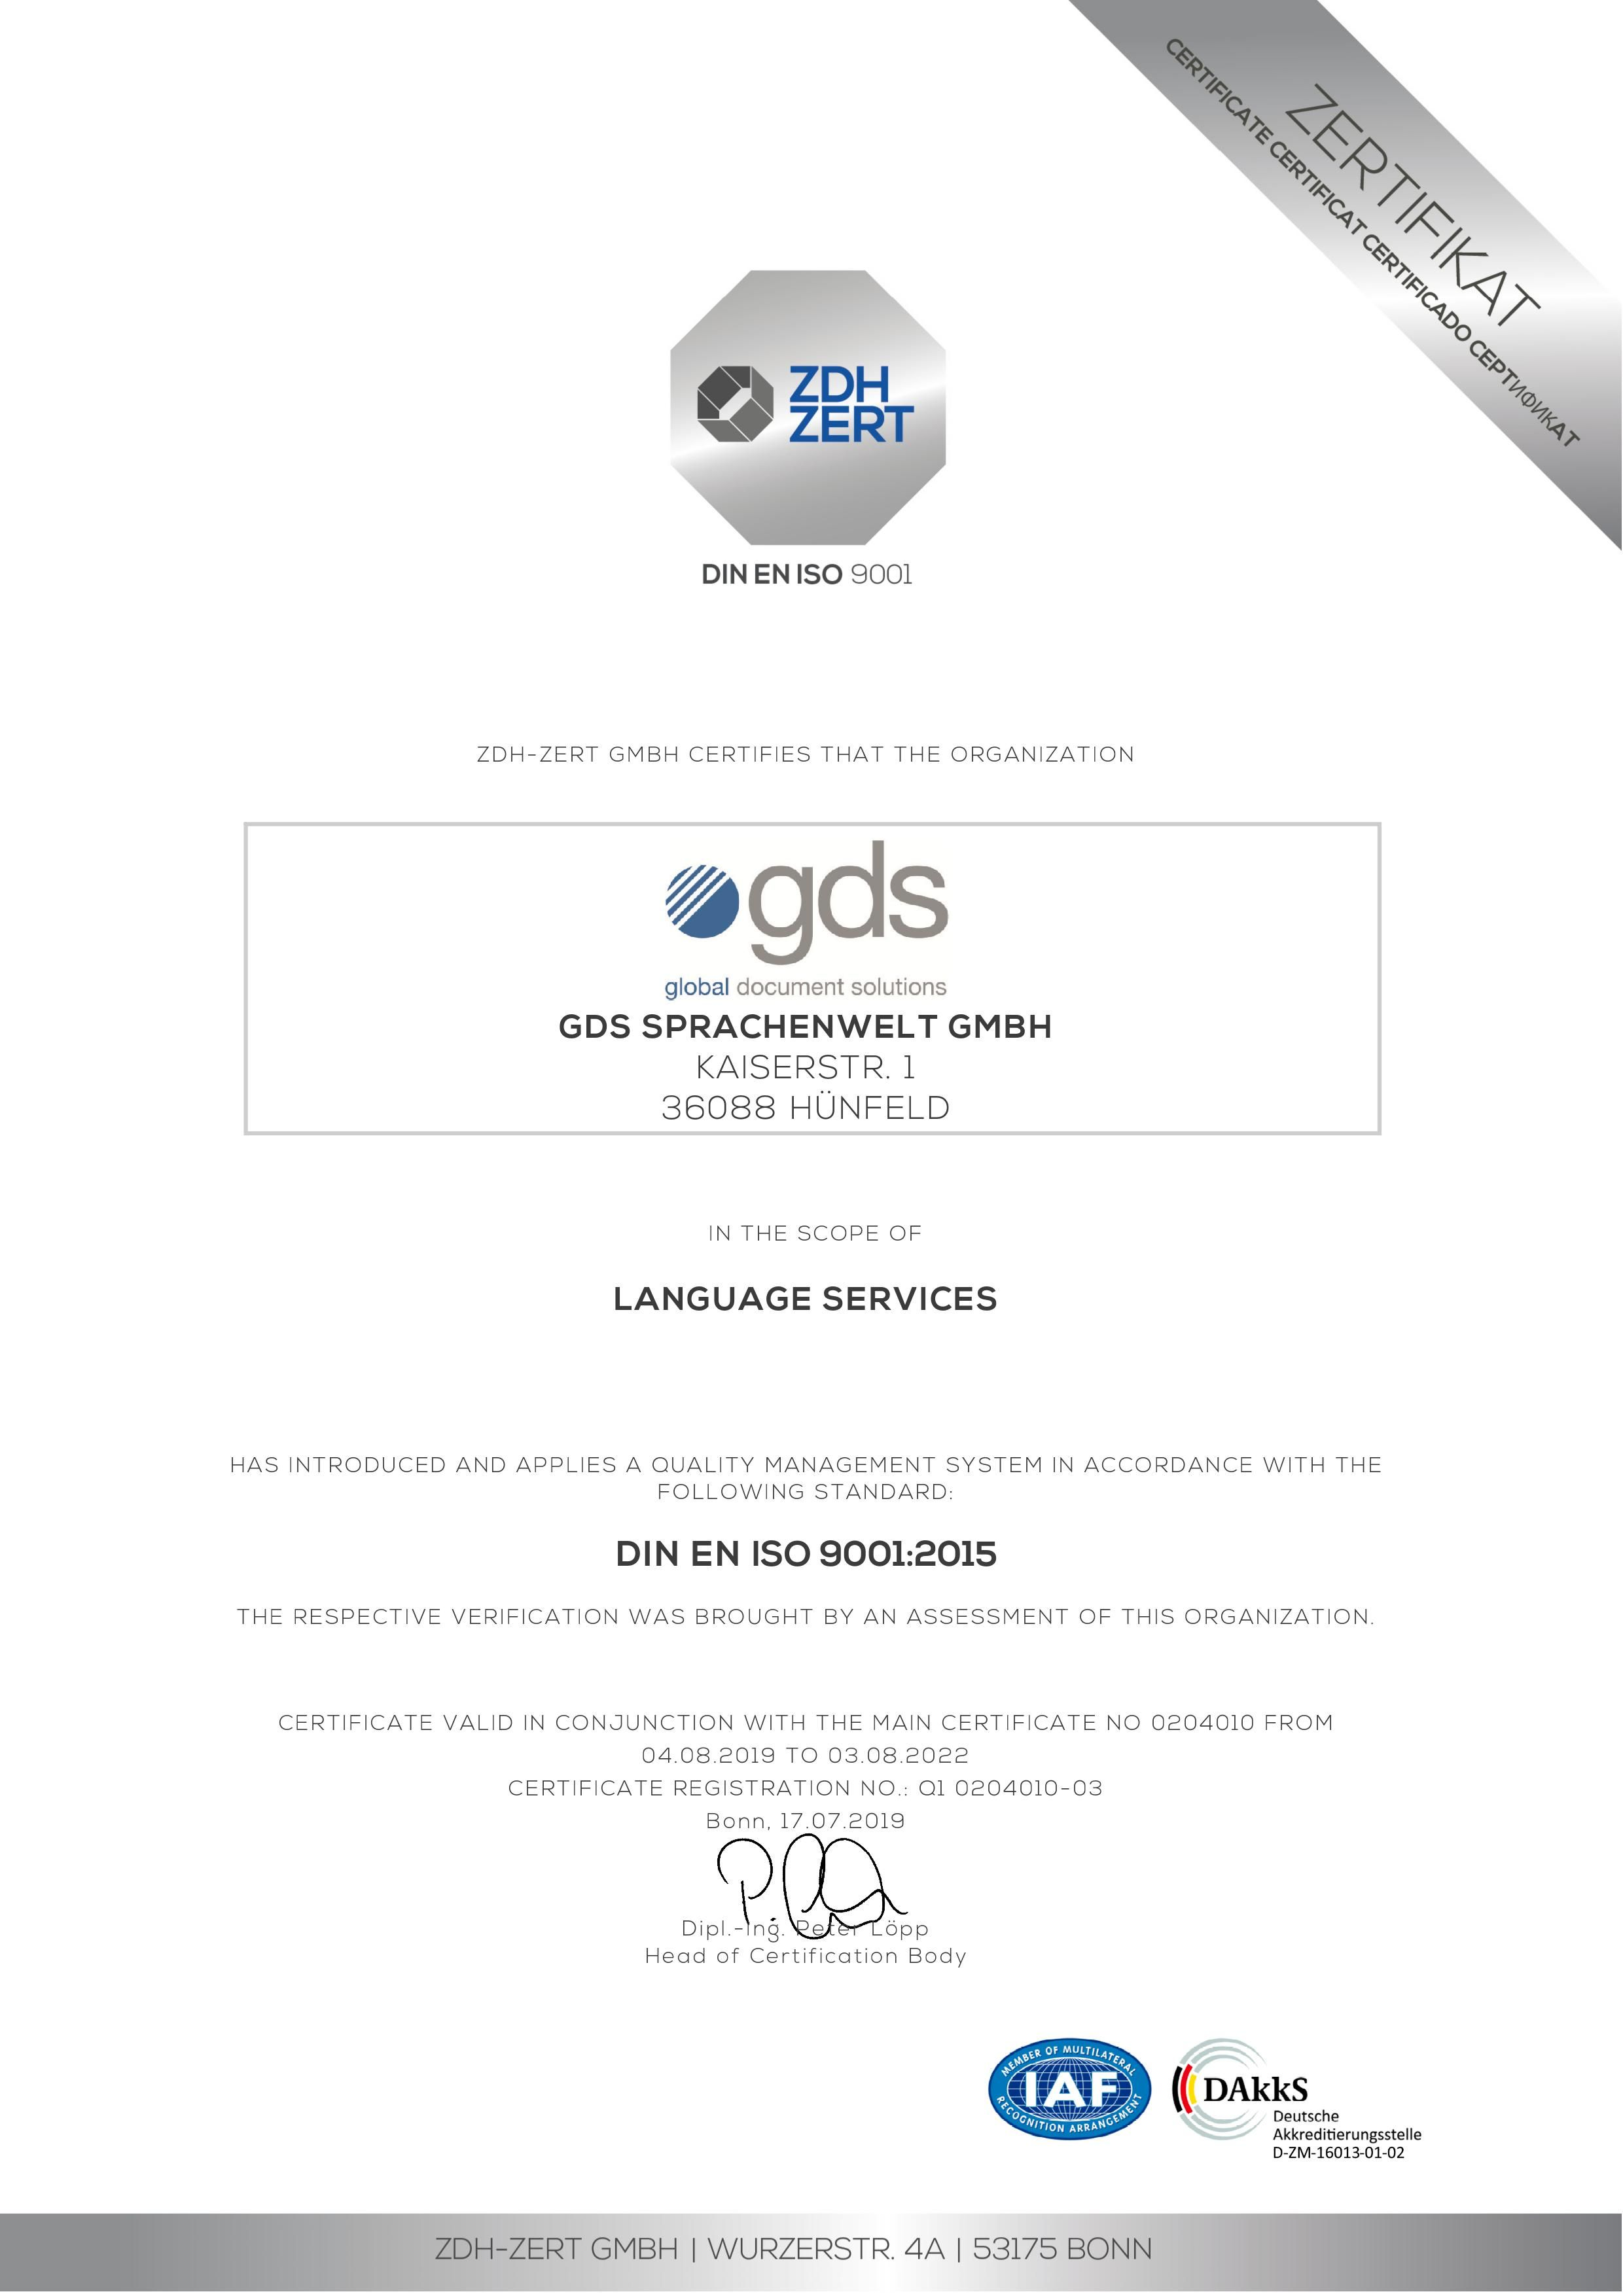 ZDH-Zert GmbH certifies that gds Sprachenwelt GmbH has introduced and applied a quality management system in the field of language services in accordance with the DIN EN ISO 9001:2015 standard.